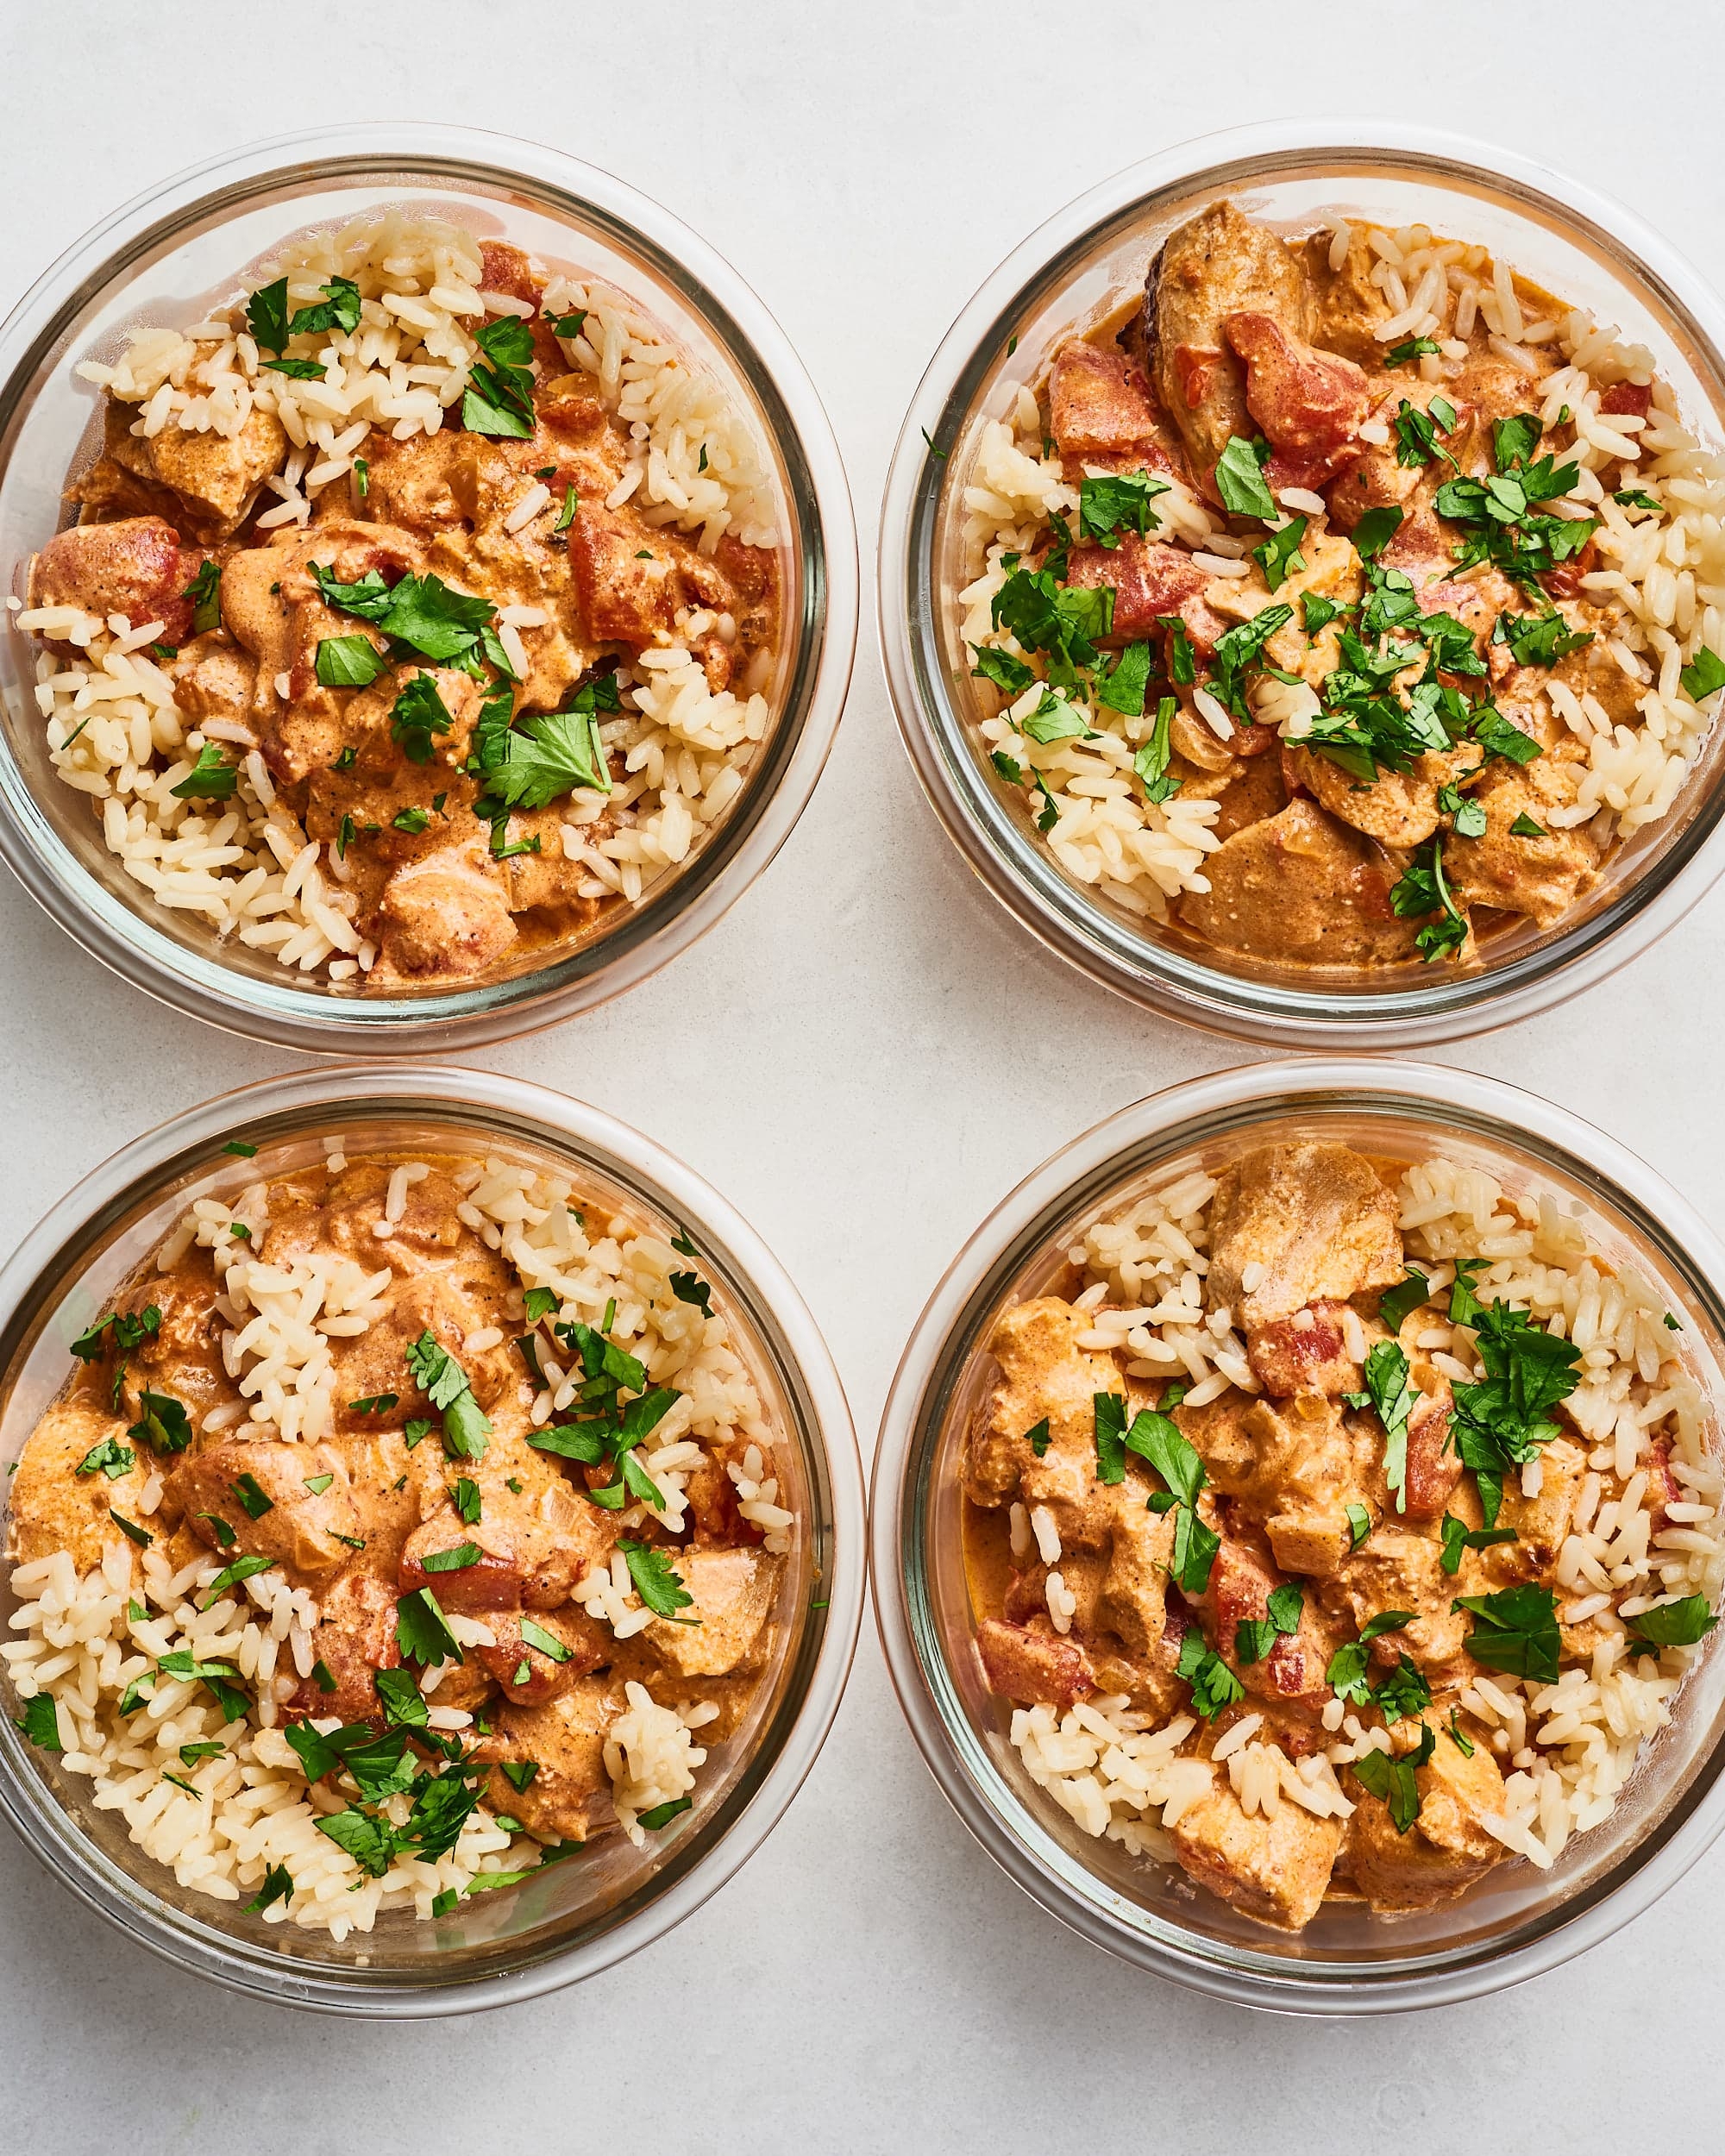 Meal Prep Plan: A Week of Family Meals from Aldi